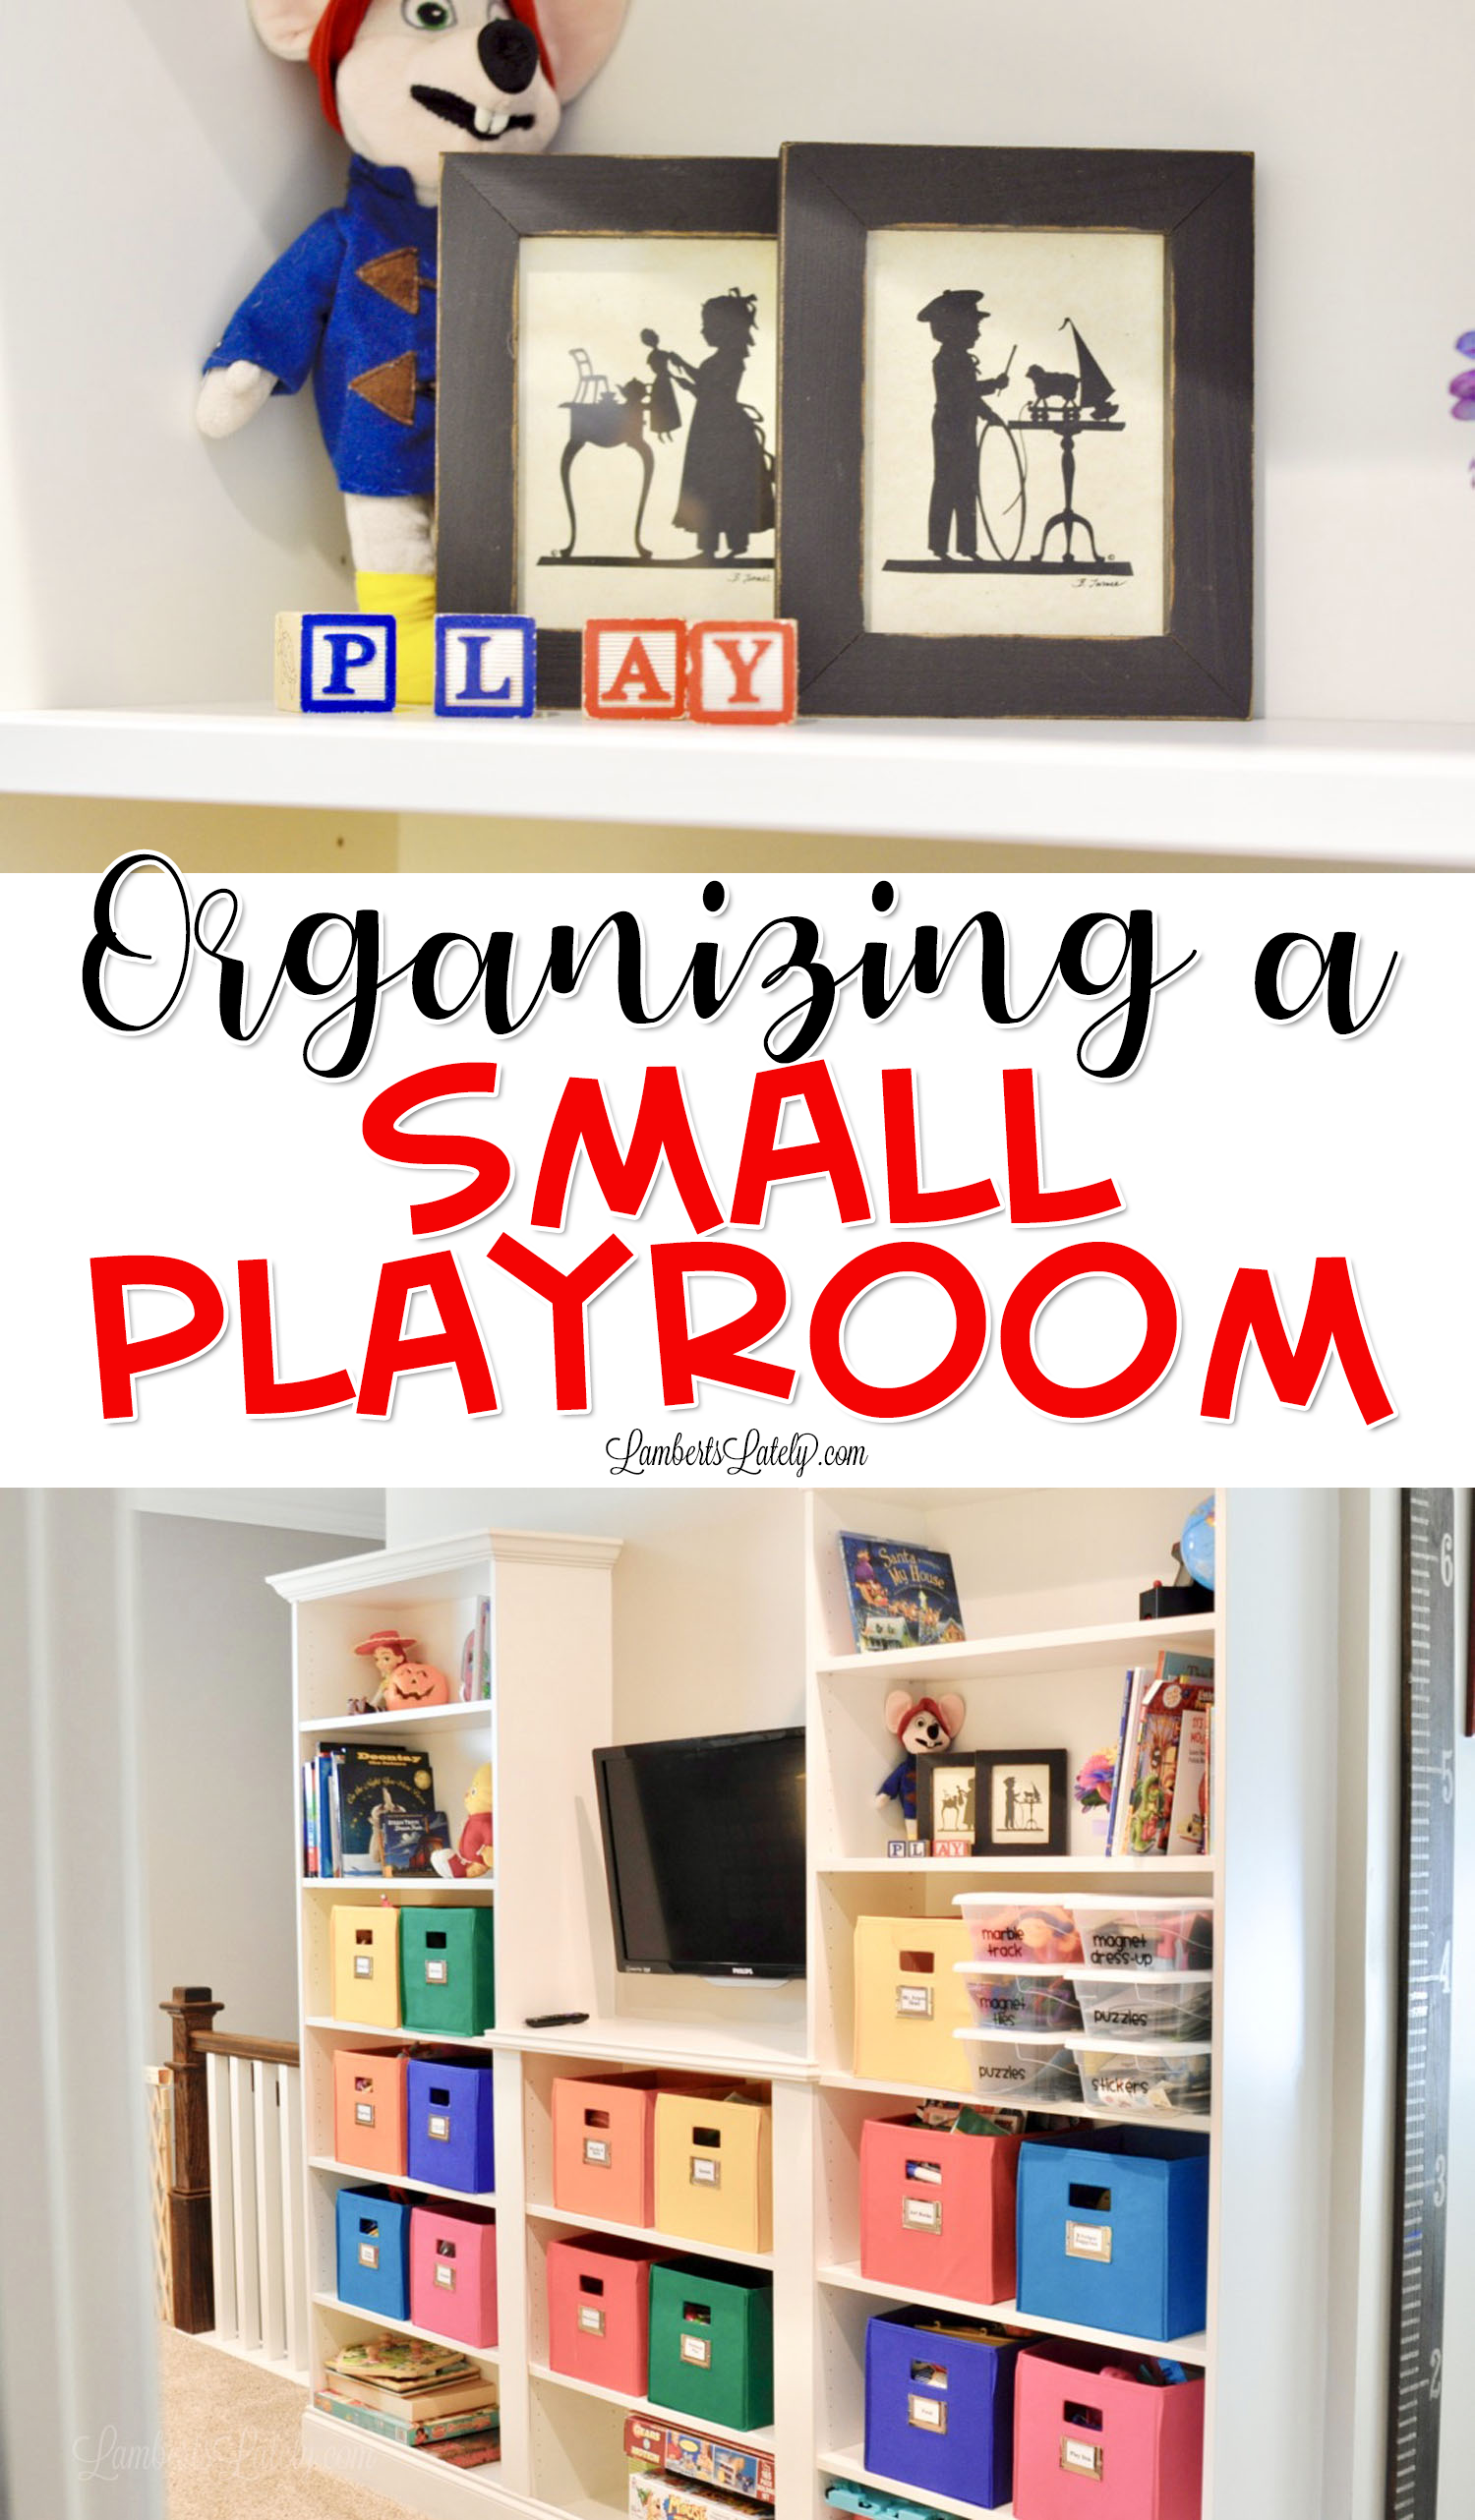 How We Organized Our Small Playroom | Planners, Printables